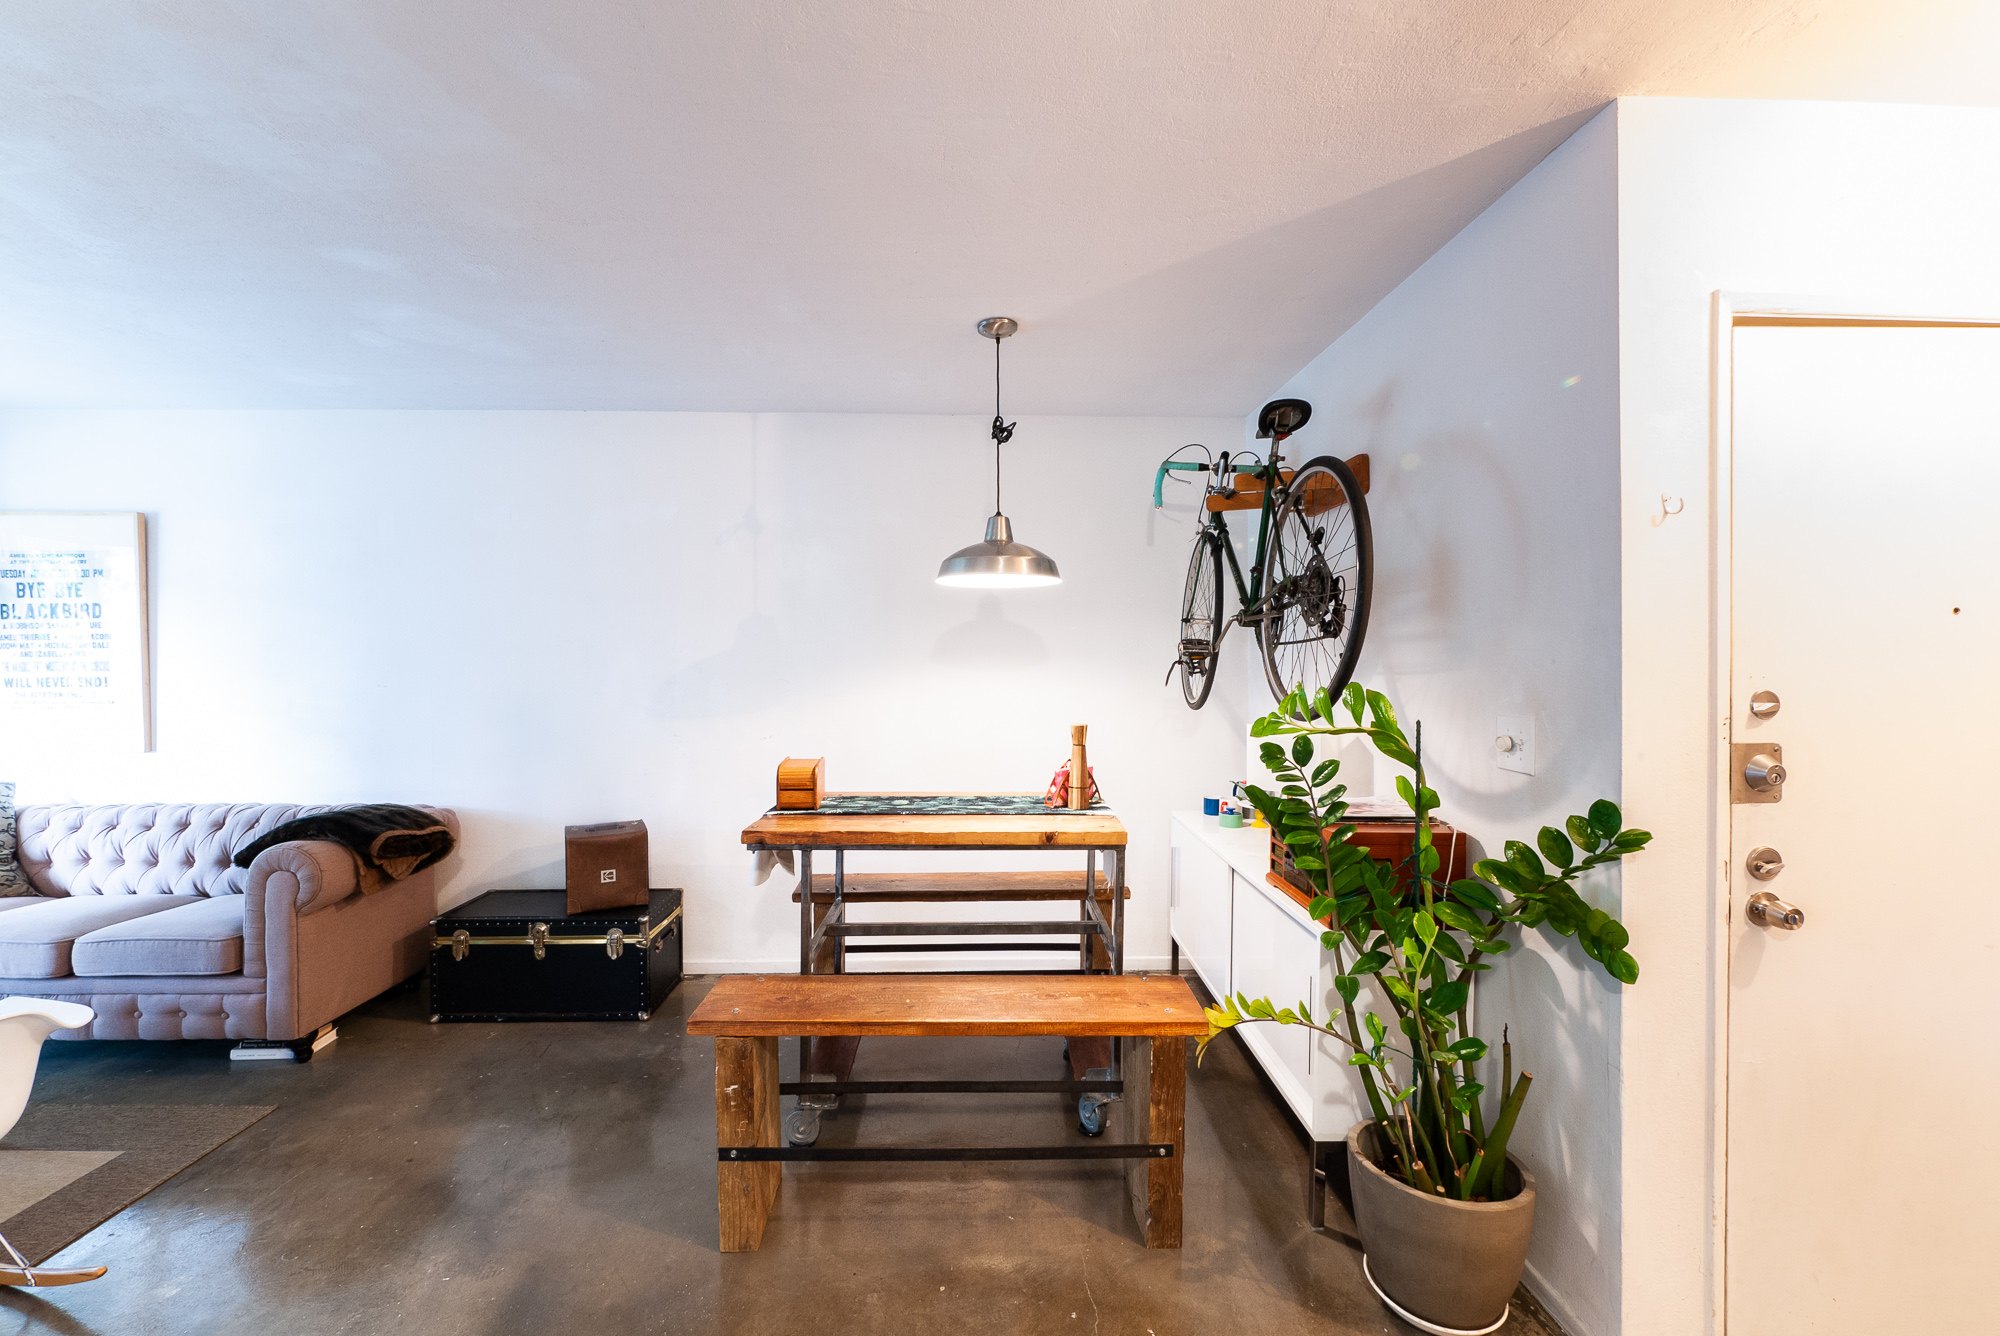 Sleek & Chic! Fully Furnished 1BD / 1BA Condo | Available for Short Term Rentals | All Utilities Included! | Parking Available